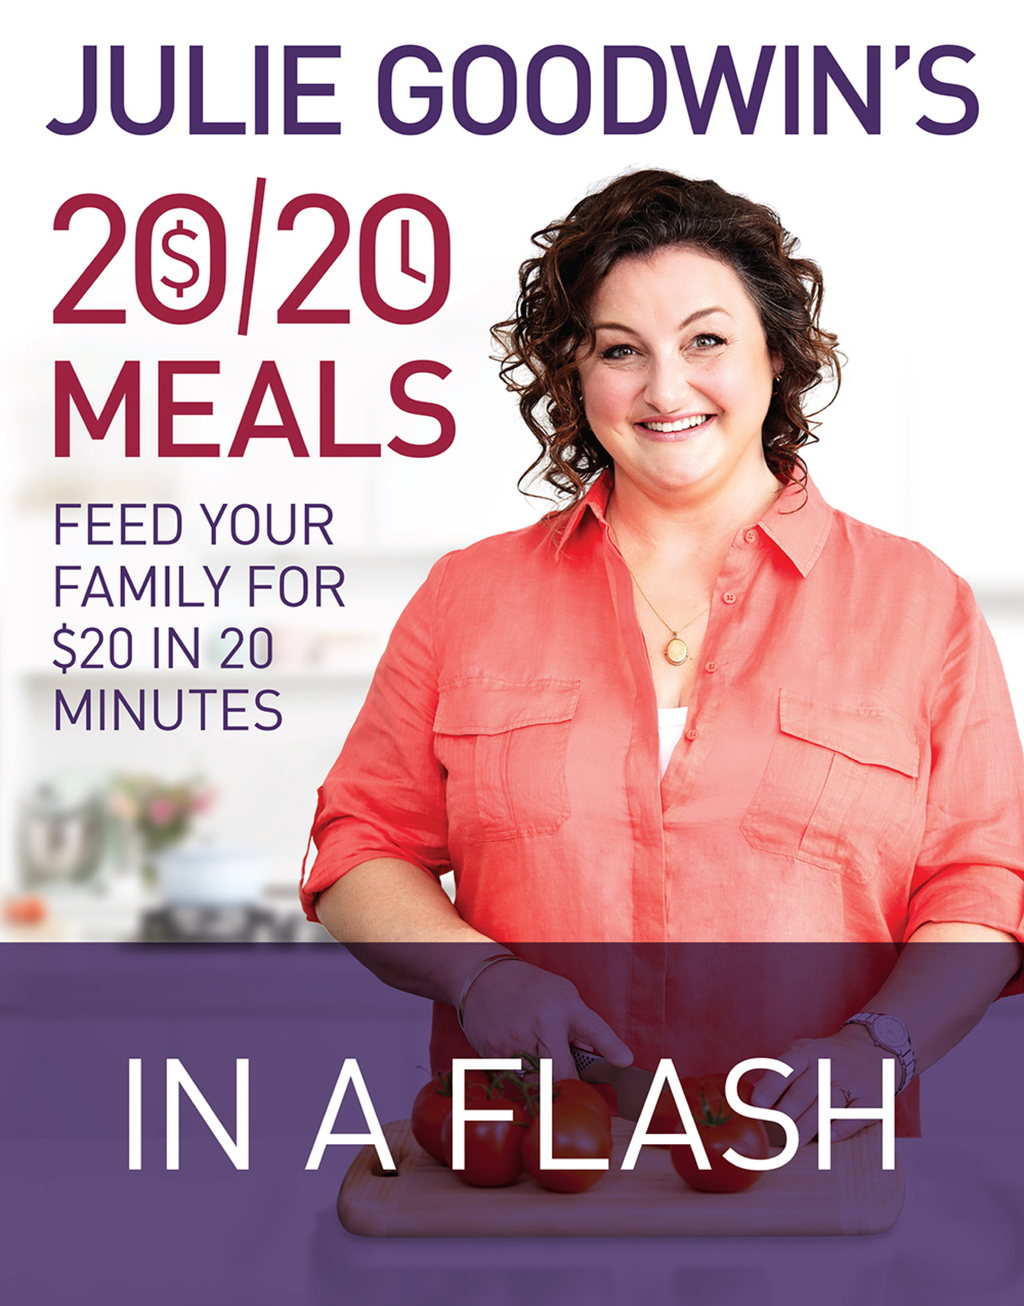 Julie Goodwin's 20/20 Meals: In a Flash